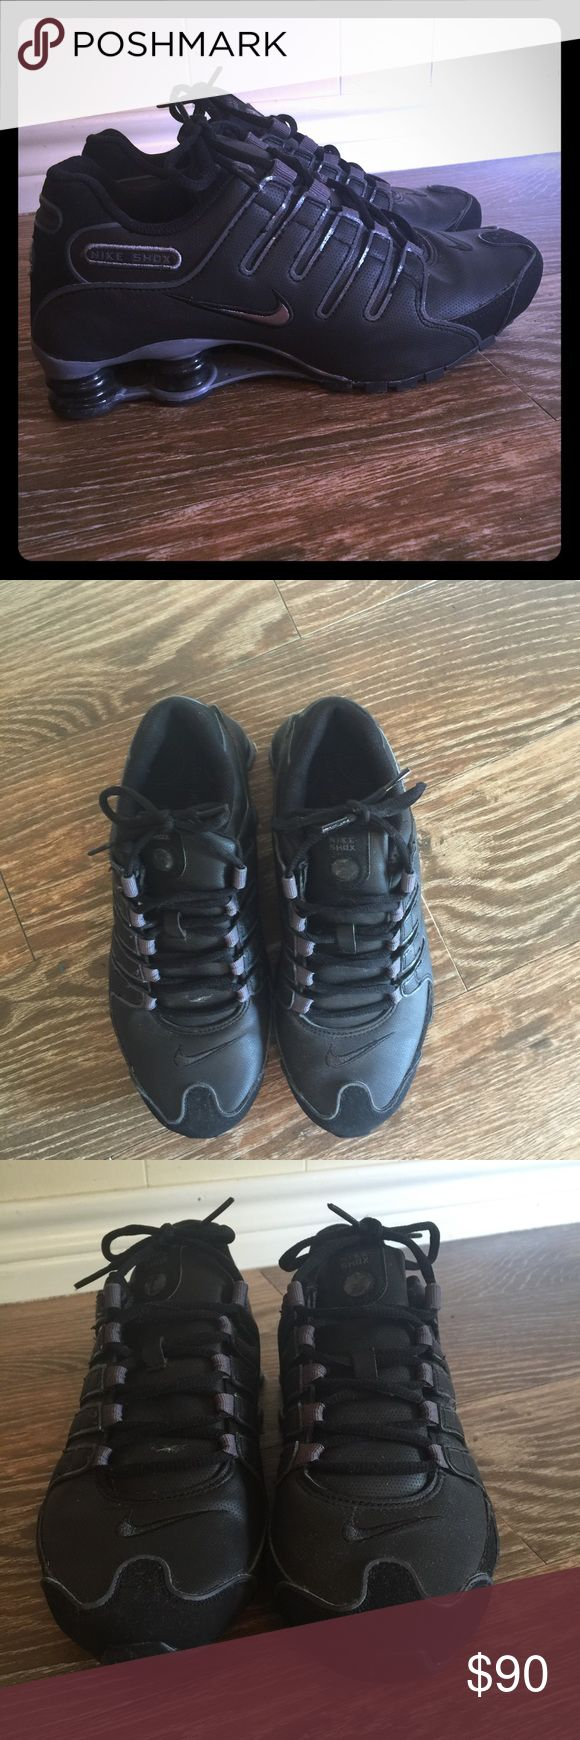 Nike shocks Black nike shocks. Only worn 3 times so they are practically new! There a men's shoe but a women's 9/ 9.5.  Super cute and comfy asking 90 Obo Nike Shoes Sneakers